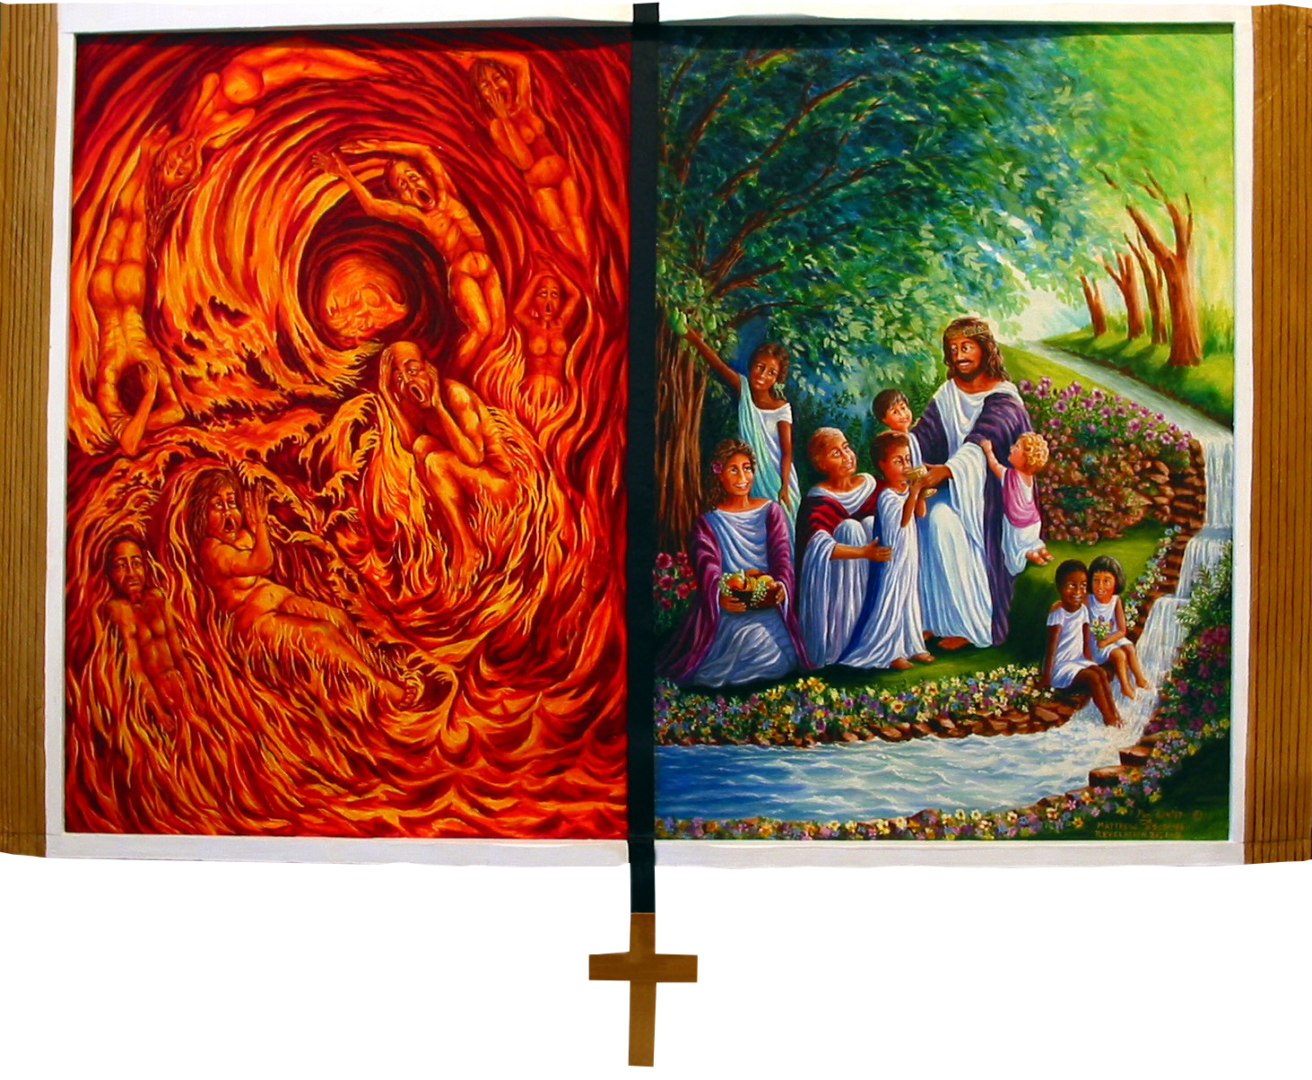 43 - Lake of Fire, River of Life - Rev 20, 21,